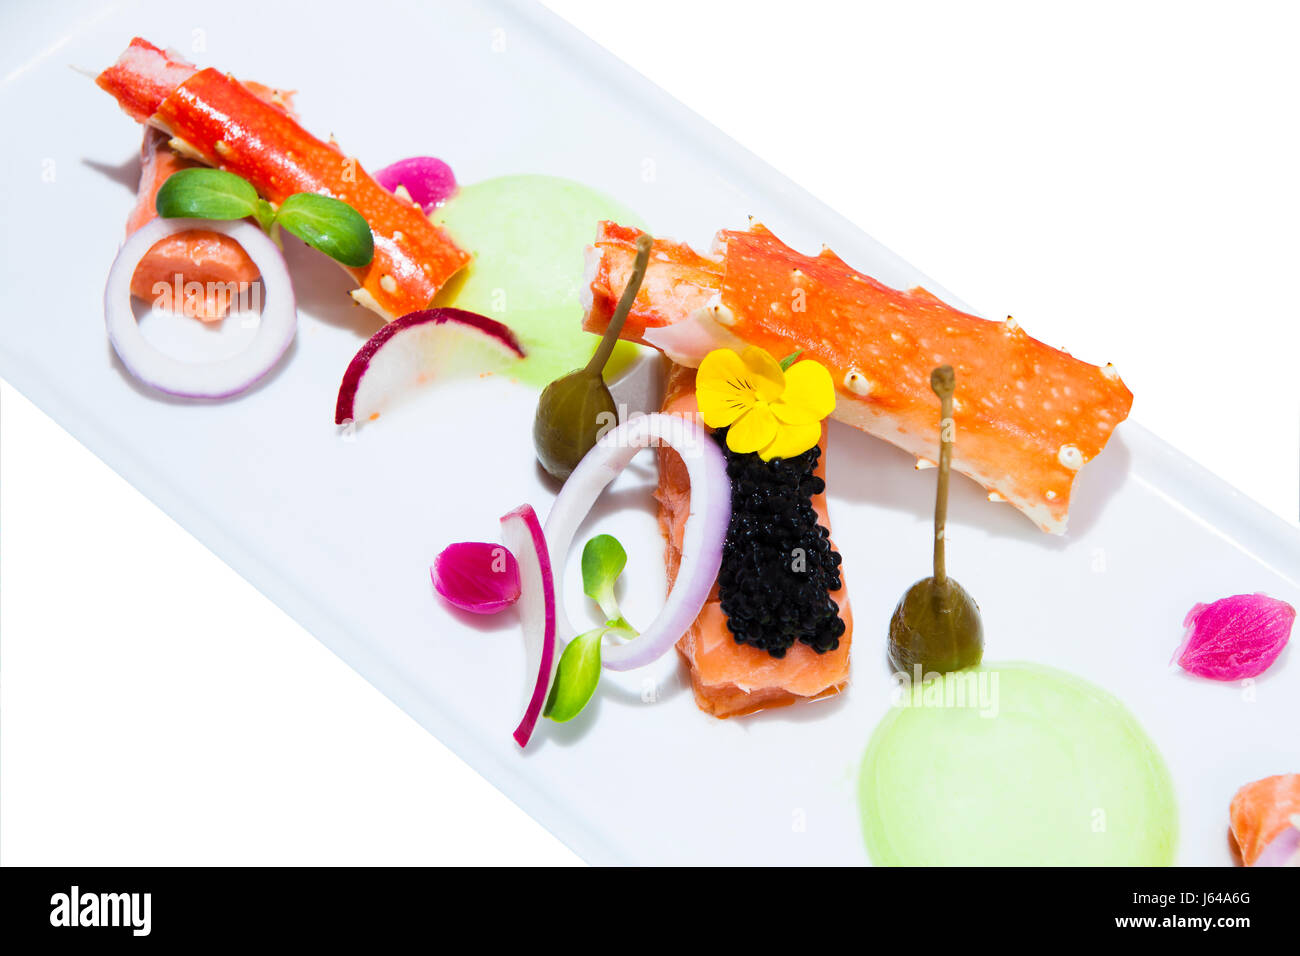 On the Modern Seafood, Trespasser seafood ingredient lobster claw and fish for salmon cells. - Stock Image